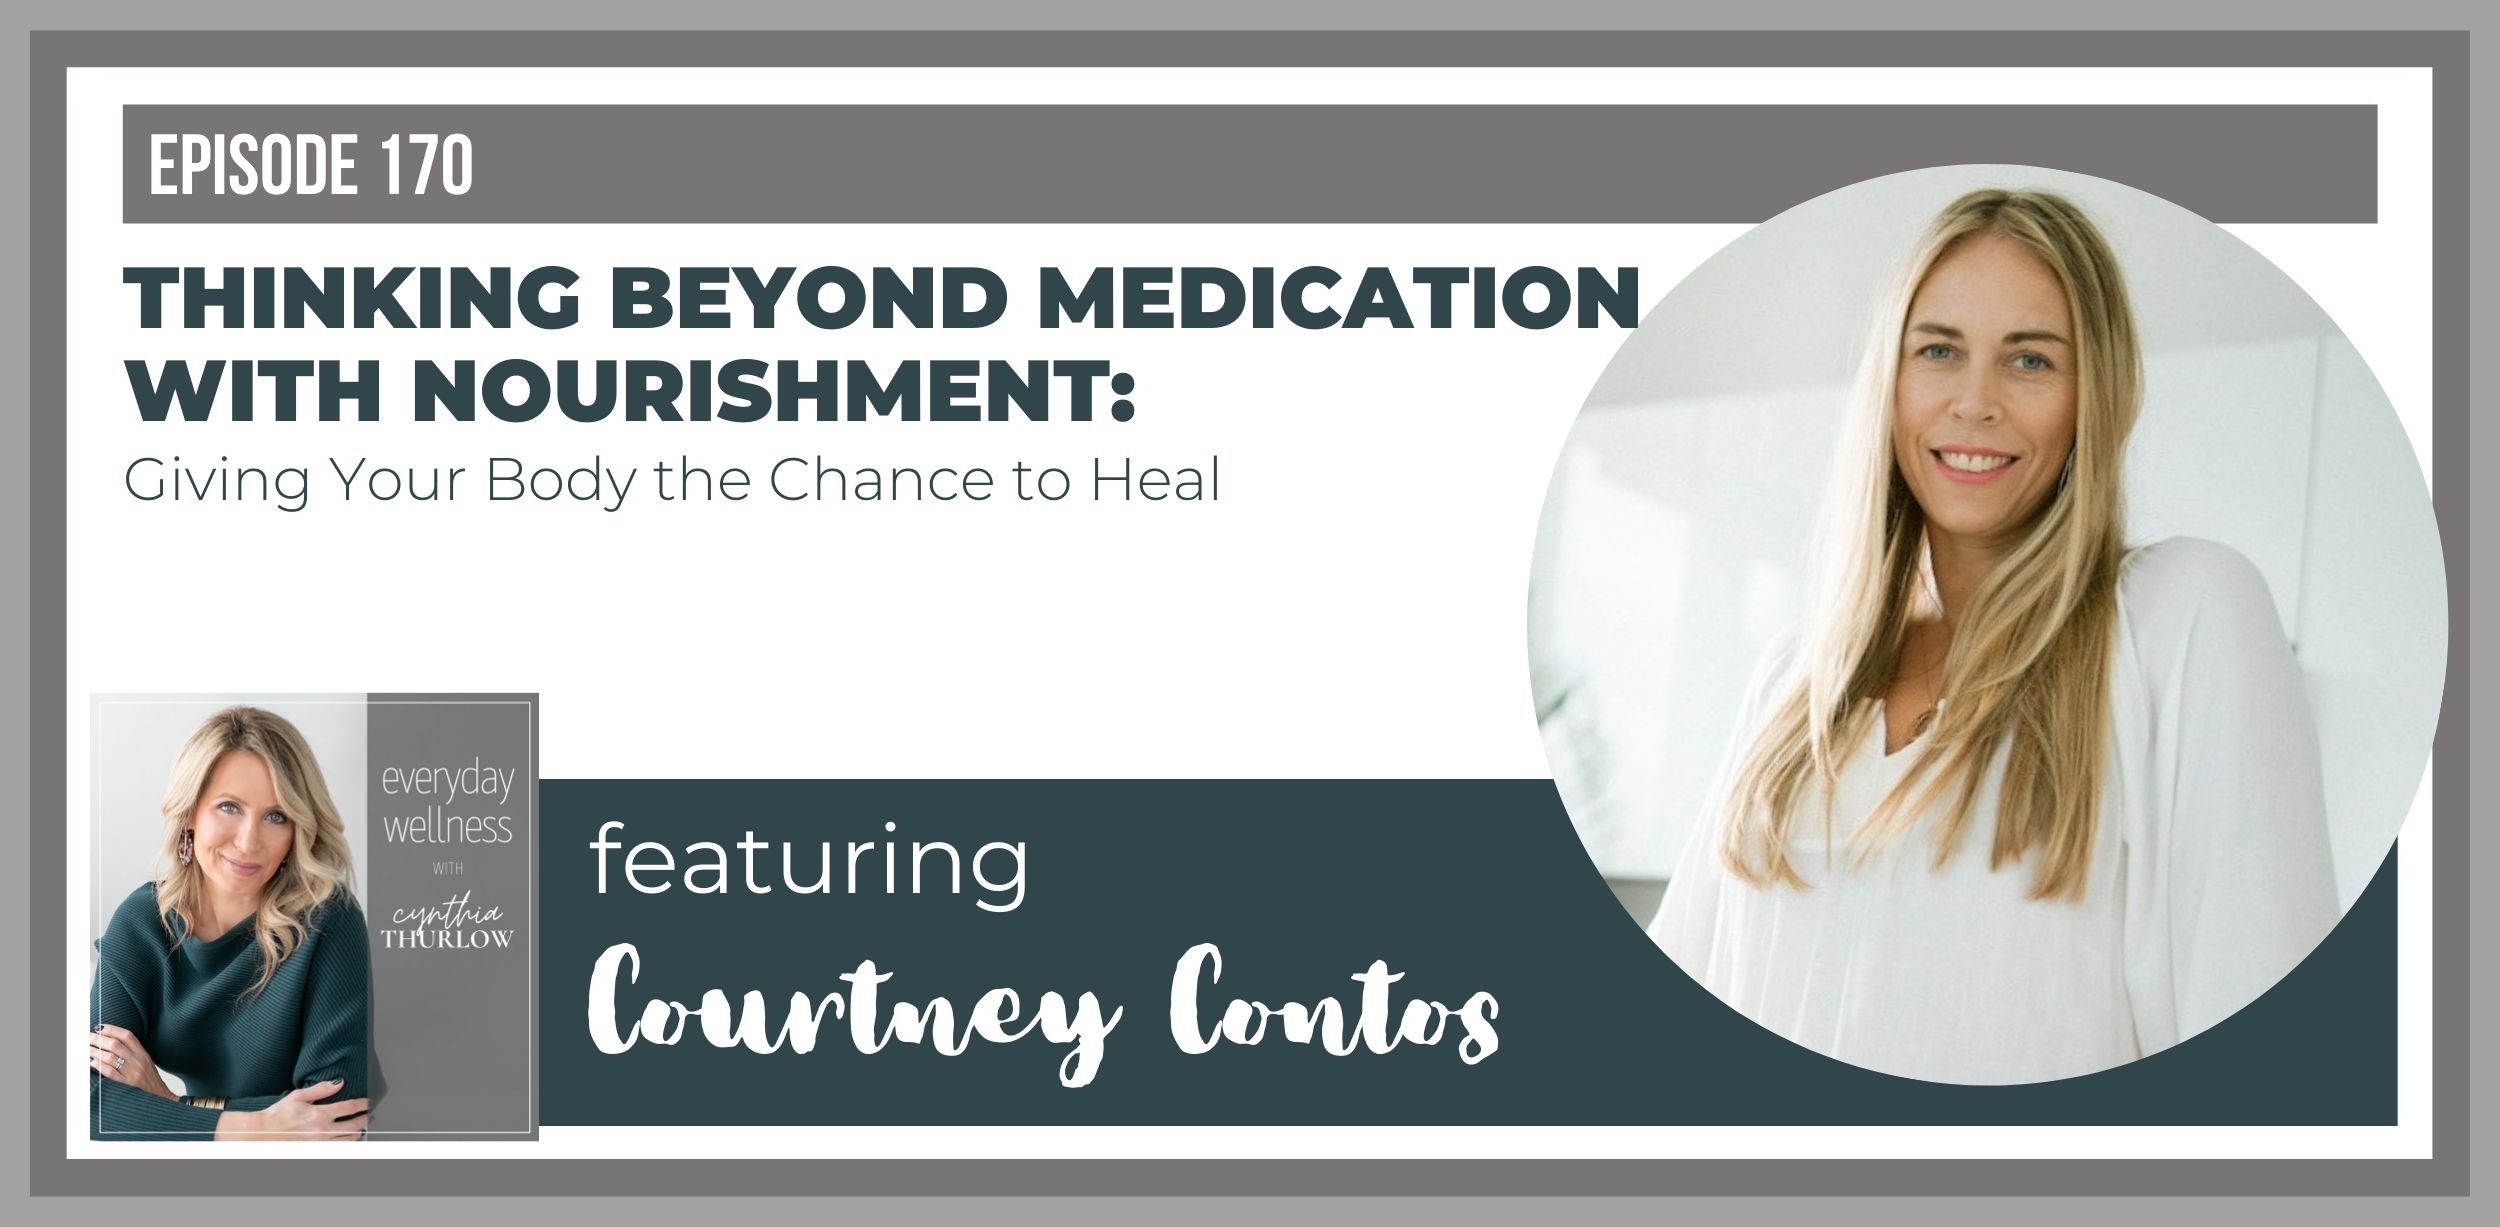 Courtney Contos on Everyday Wellness Podcast with Cynthia Thurlow